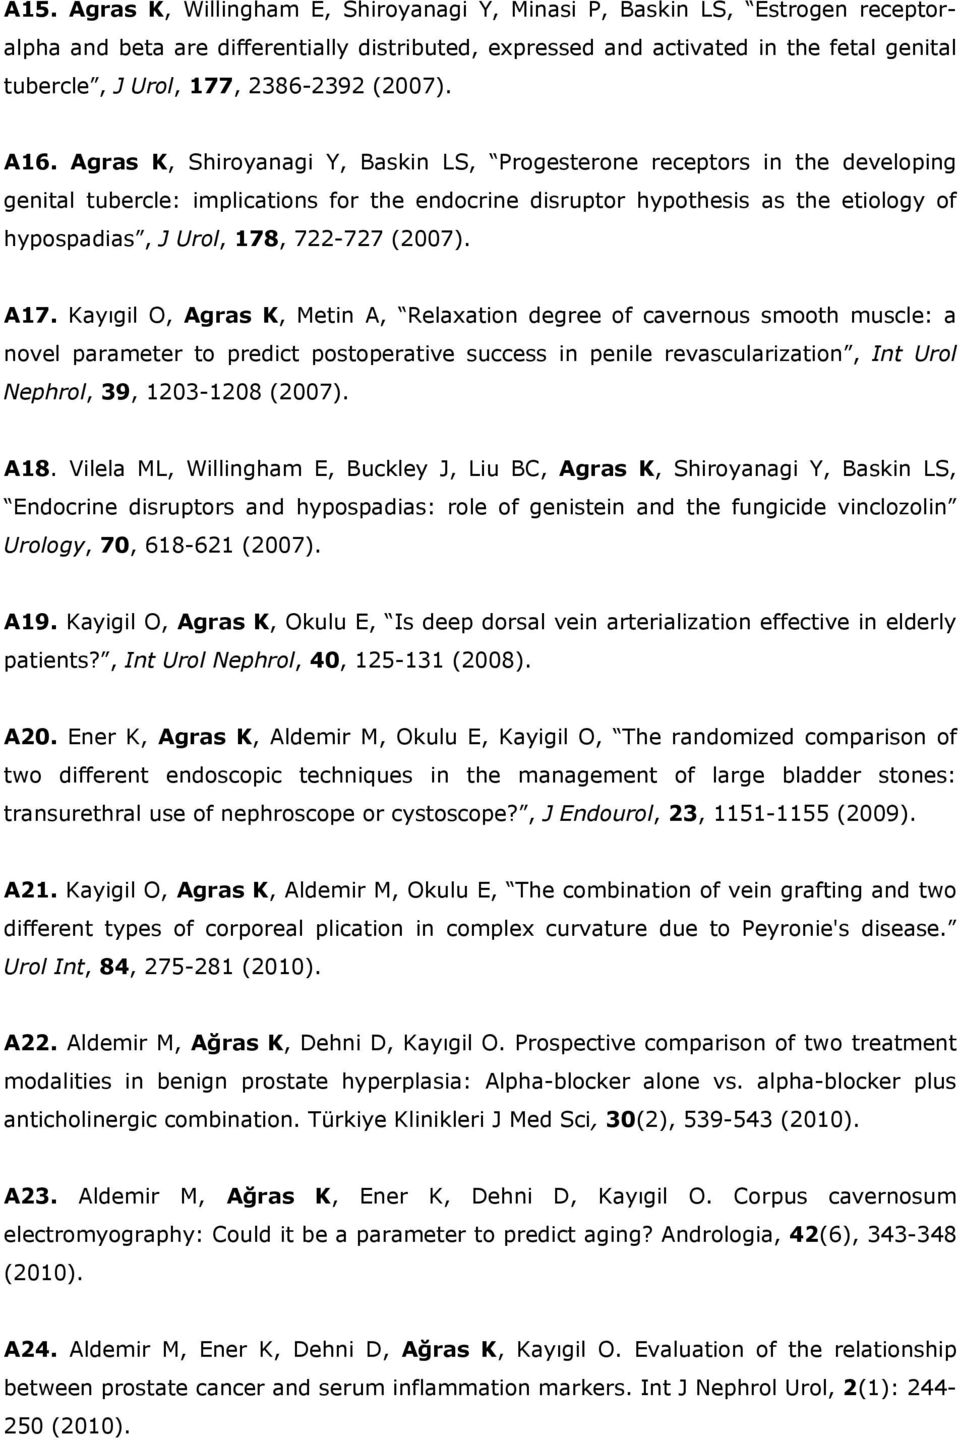 Agras K, Shiroyanagi Y, Baskin LS, Progesterone receptors in the developing genital tubercle: implications for the endocrine disruptor hypothesis as the etiology of hypospadias, J Urol, 178, 722-727